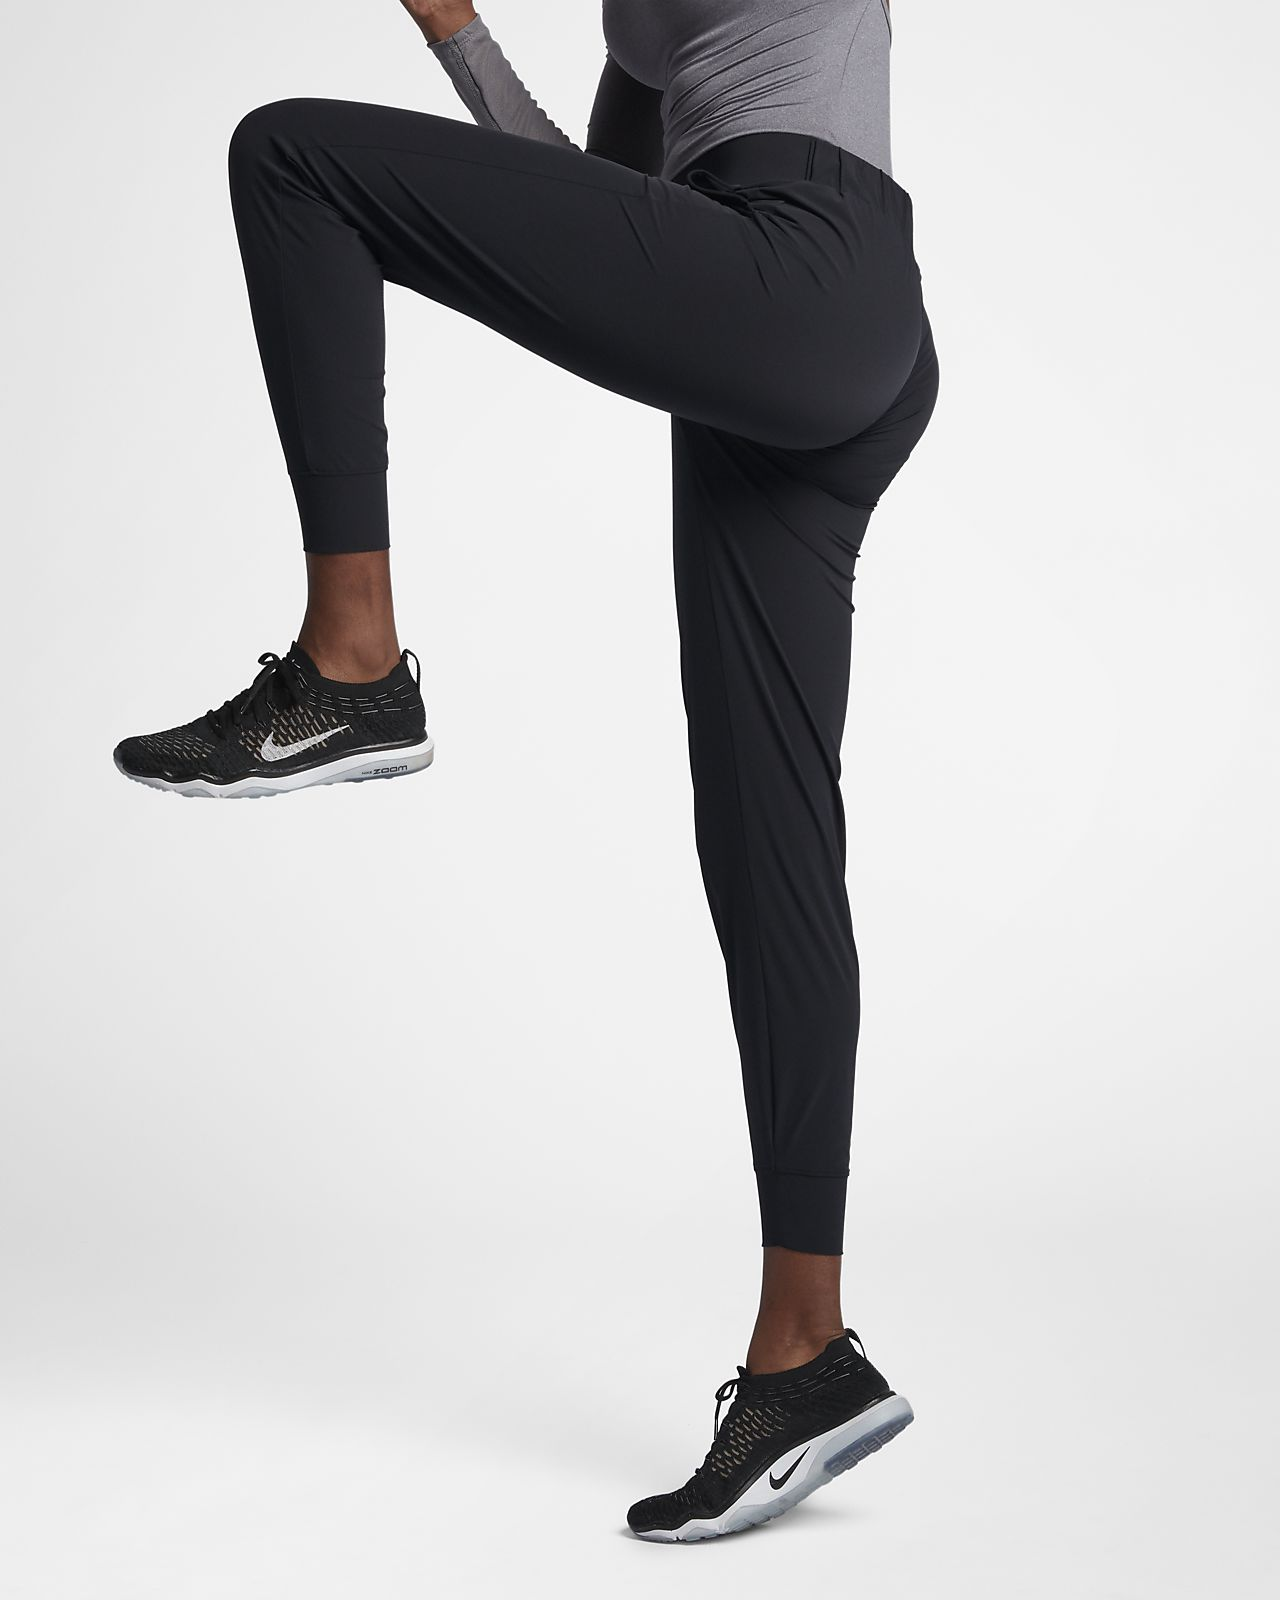 080dde6d2199 Nike Bliss Lux Women s Mid-Rise Training Trousers. Nike.com CA